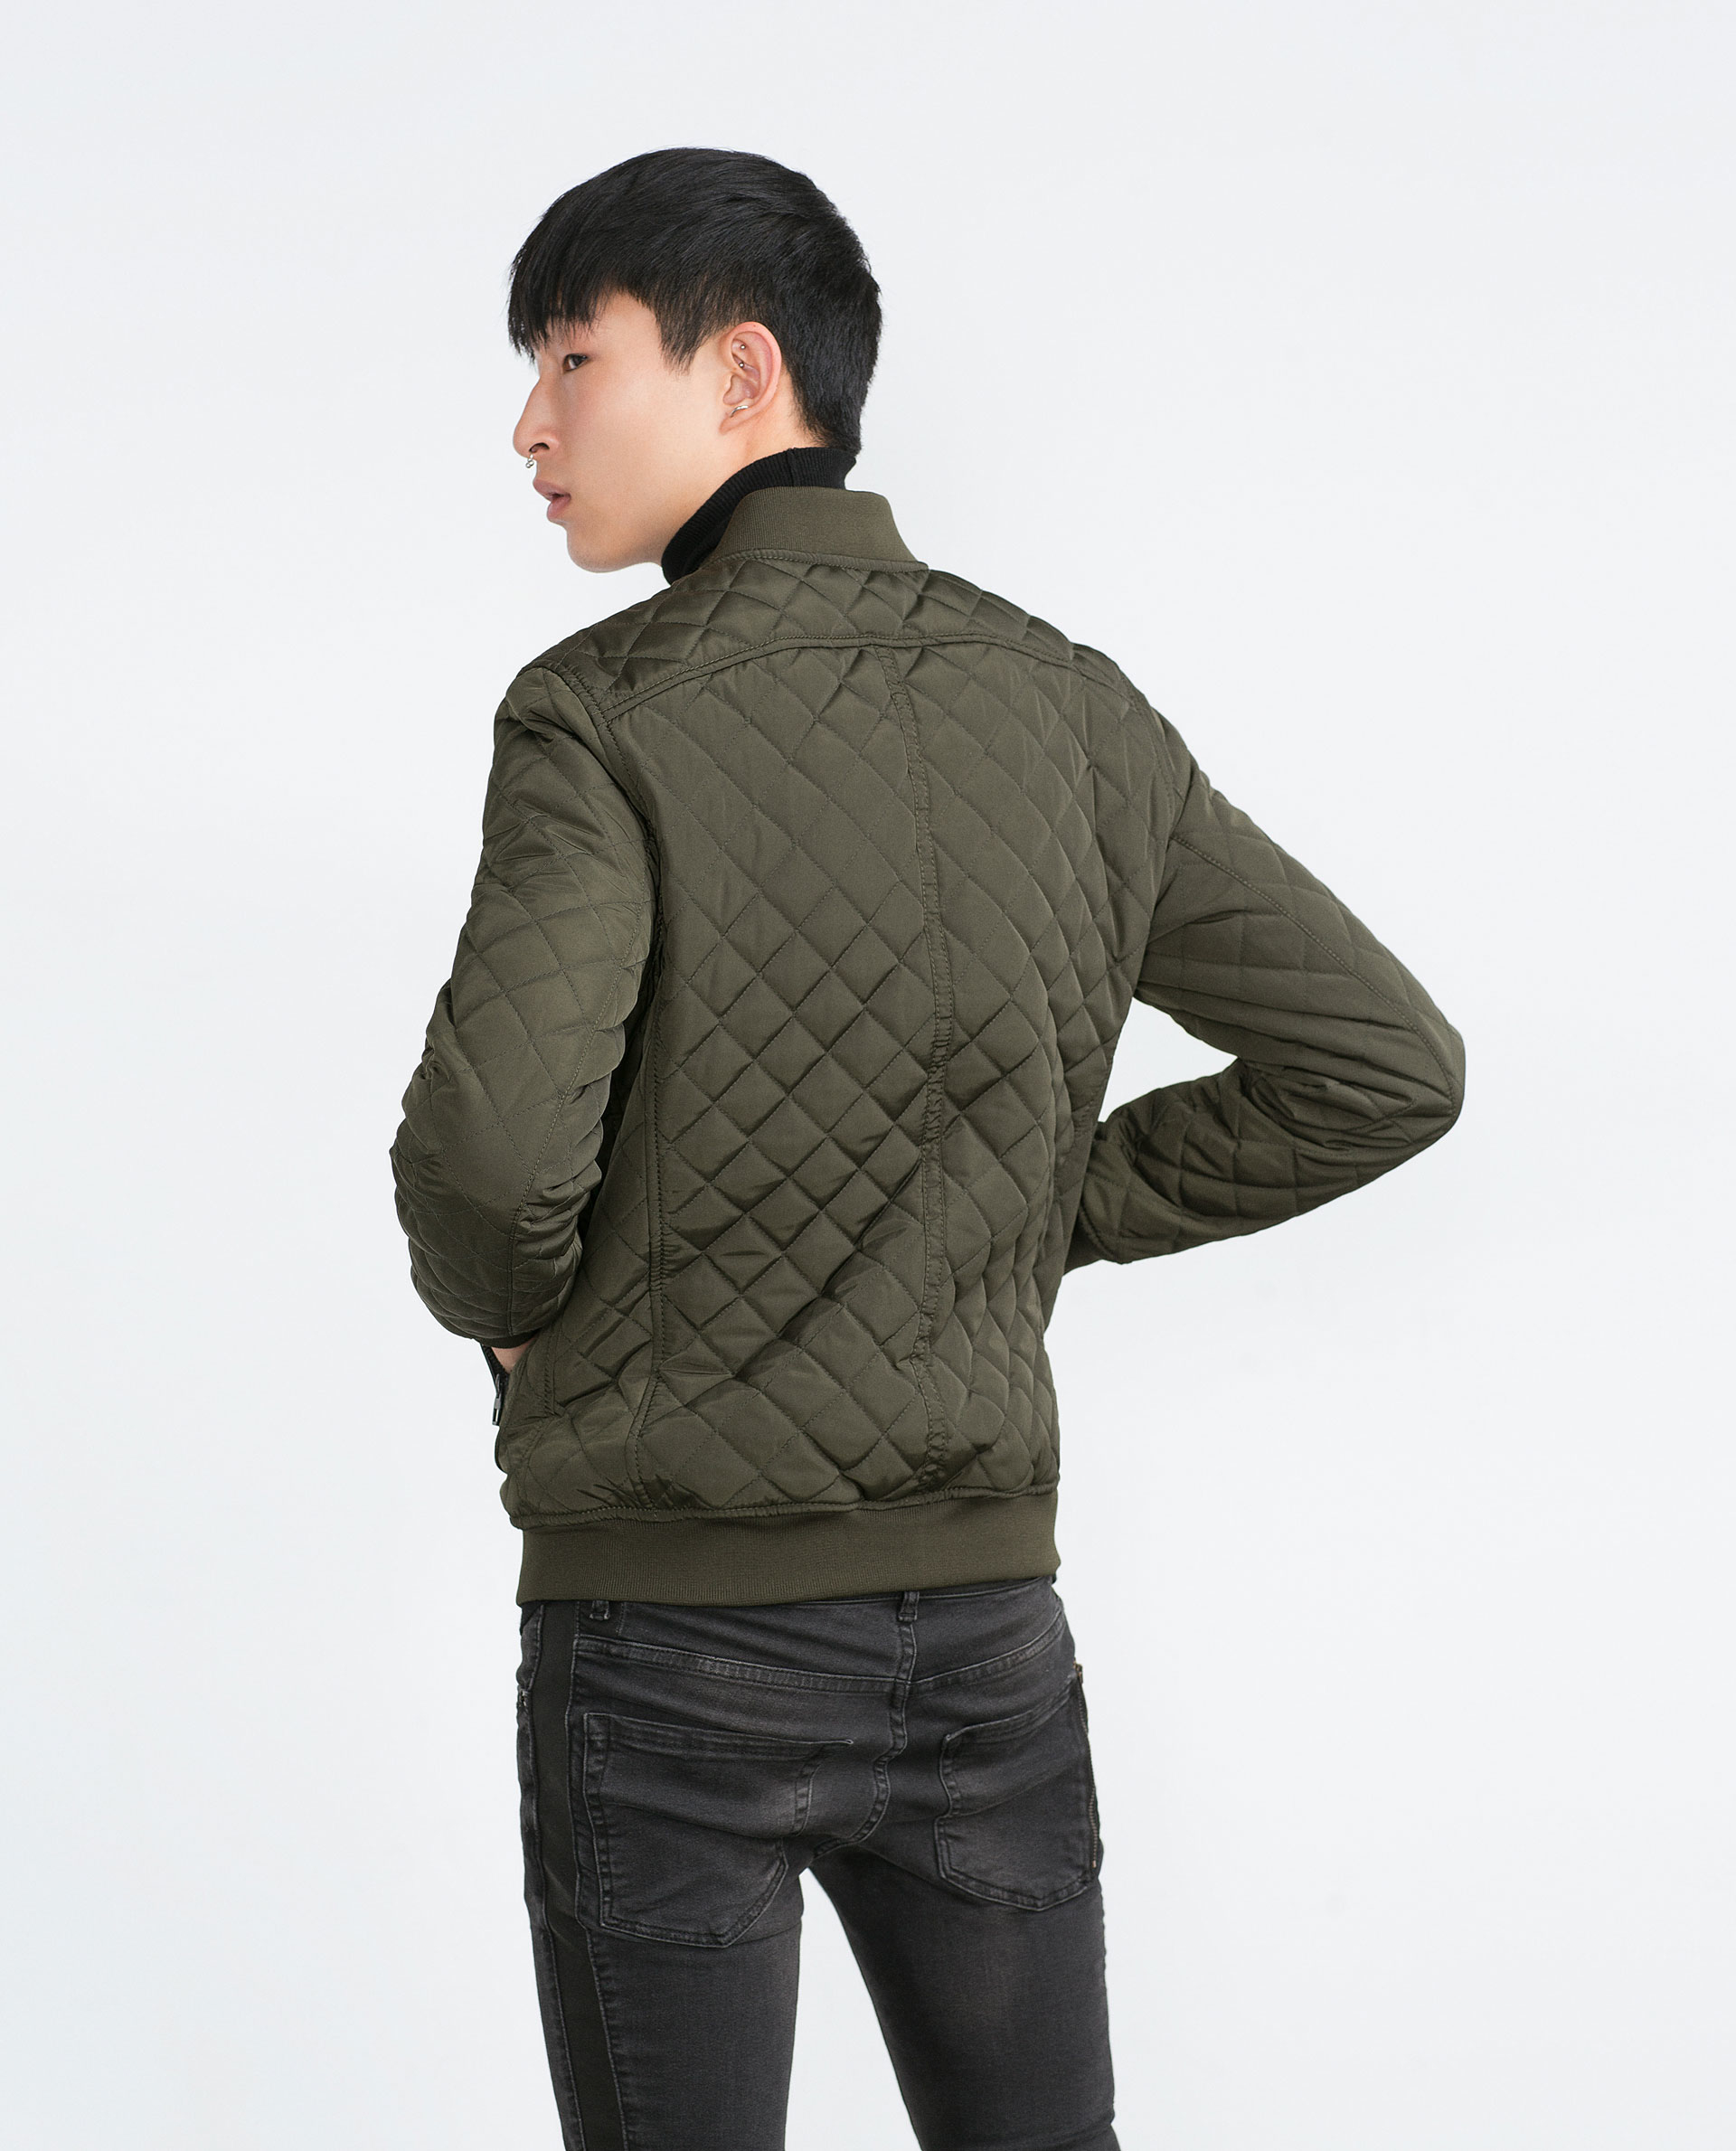 Calvin Klein men's outerwear quilted bomber jacket with zipper front. SHDAS Men's Slim Fit Zip Up Square Pattern Quilted Bomber Jacket. by SHDAS. $ - $ $ 29 $ 30 5 out of 5 stars 6. See Details. Promotion Available See Details.